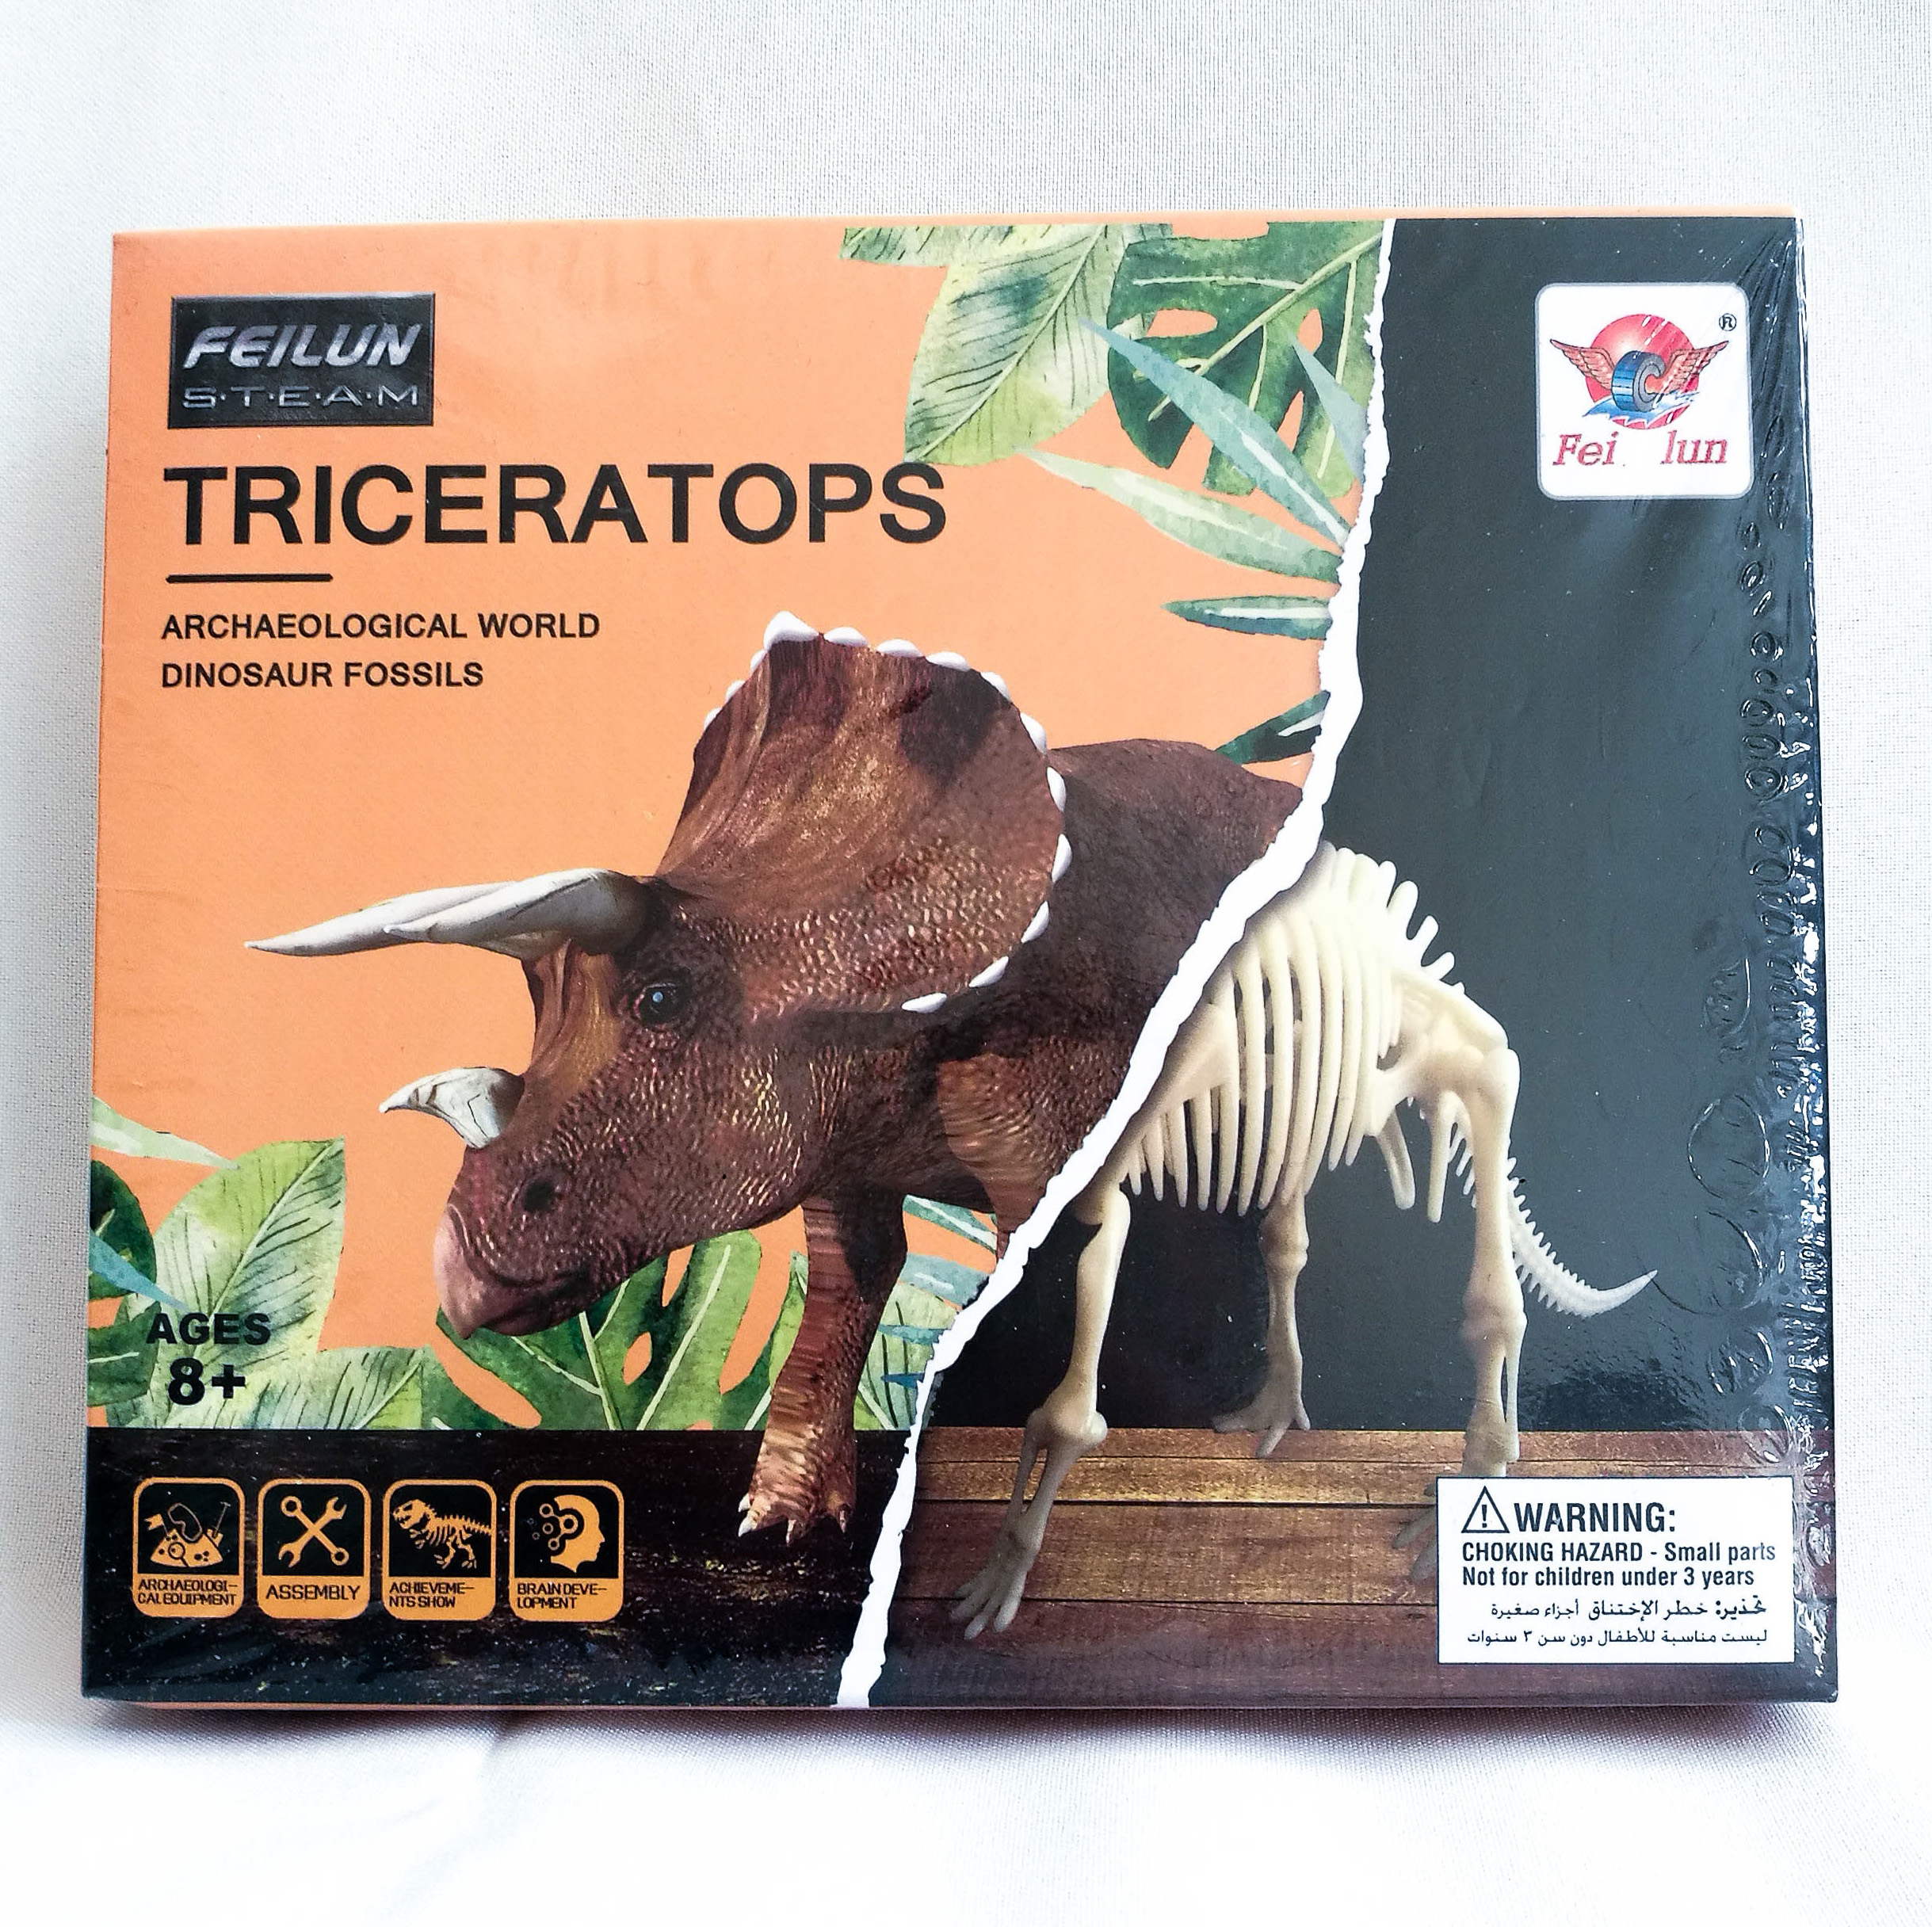 Triceratops - Archaelogical World Dinosaur Fossil